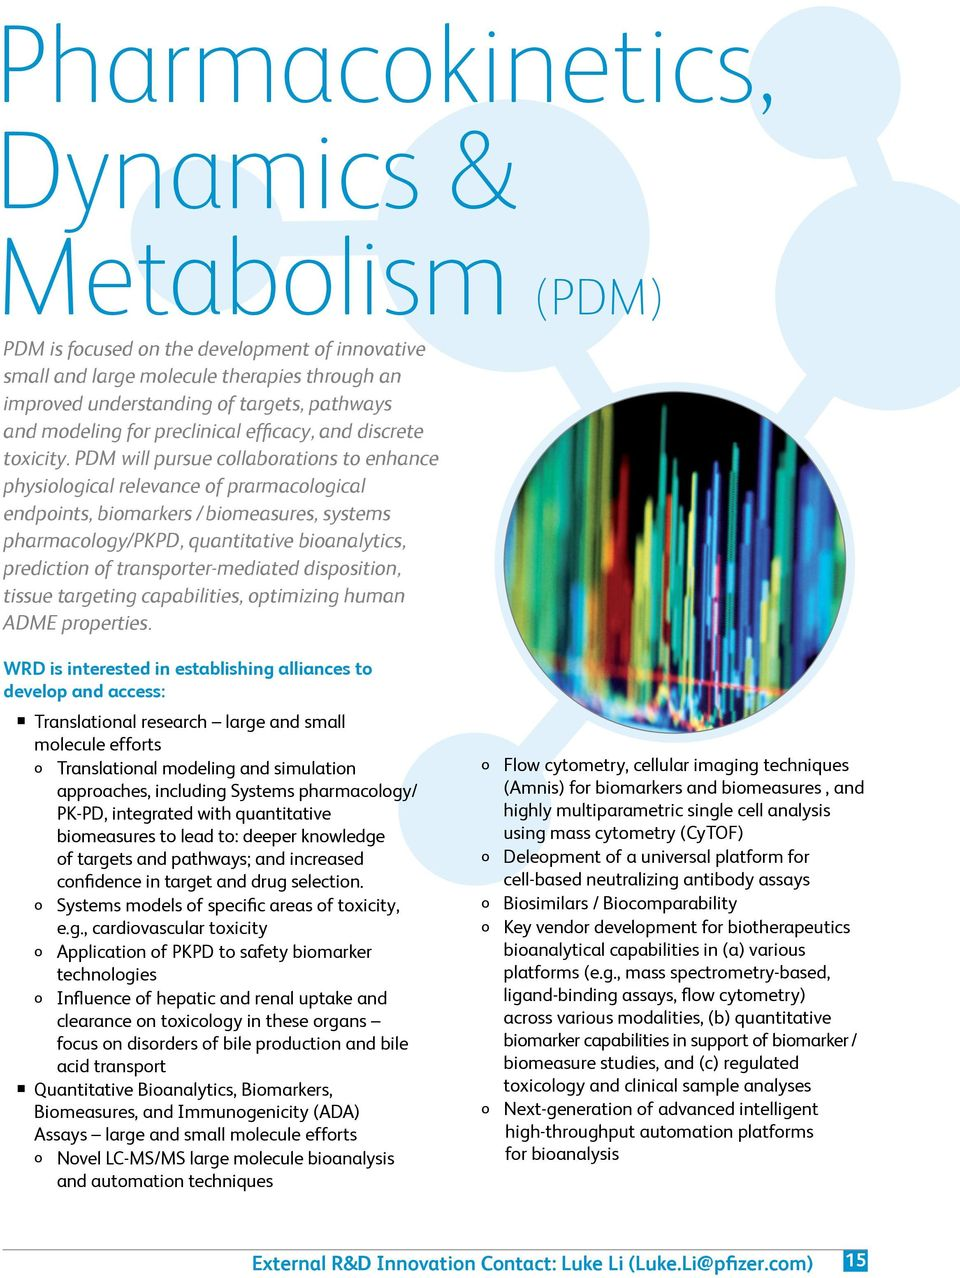 PDM will pursue collaborations to enhance physiological relevance of prarmacological endpoints, biomarkers / biomeasures, systems pharmacology/pkpd, quantitative bioanalytics, prediction of